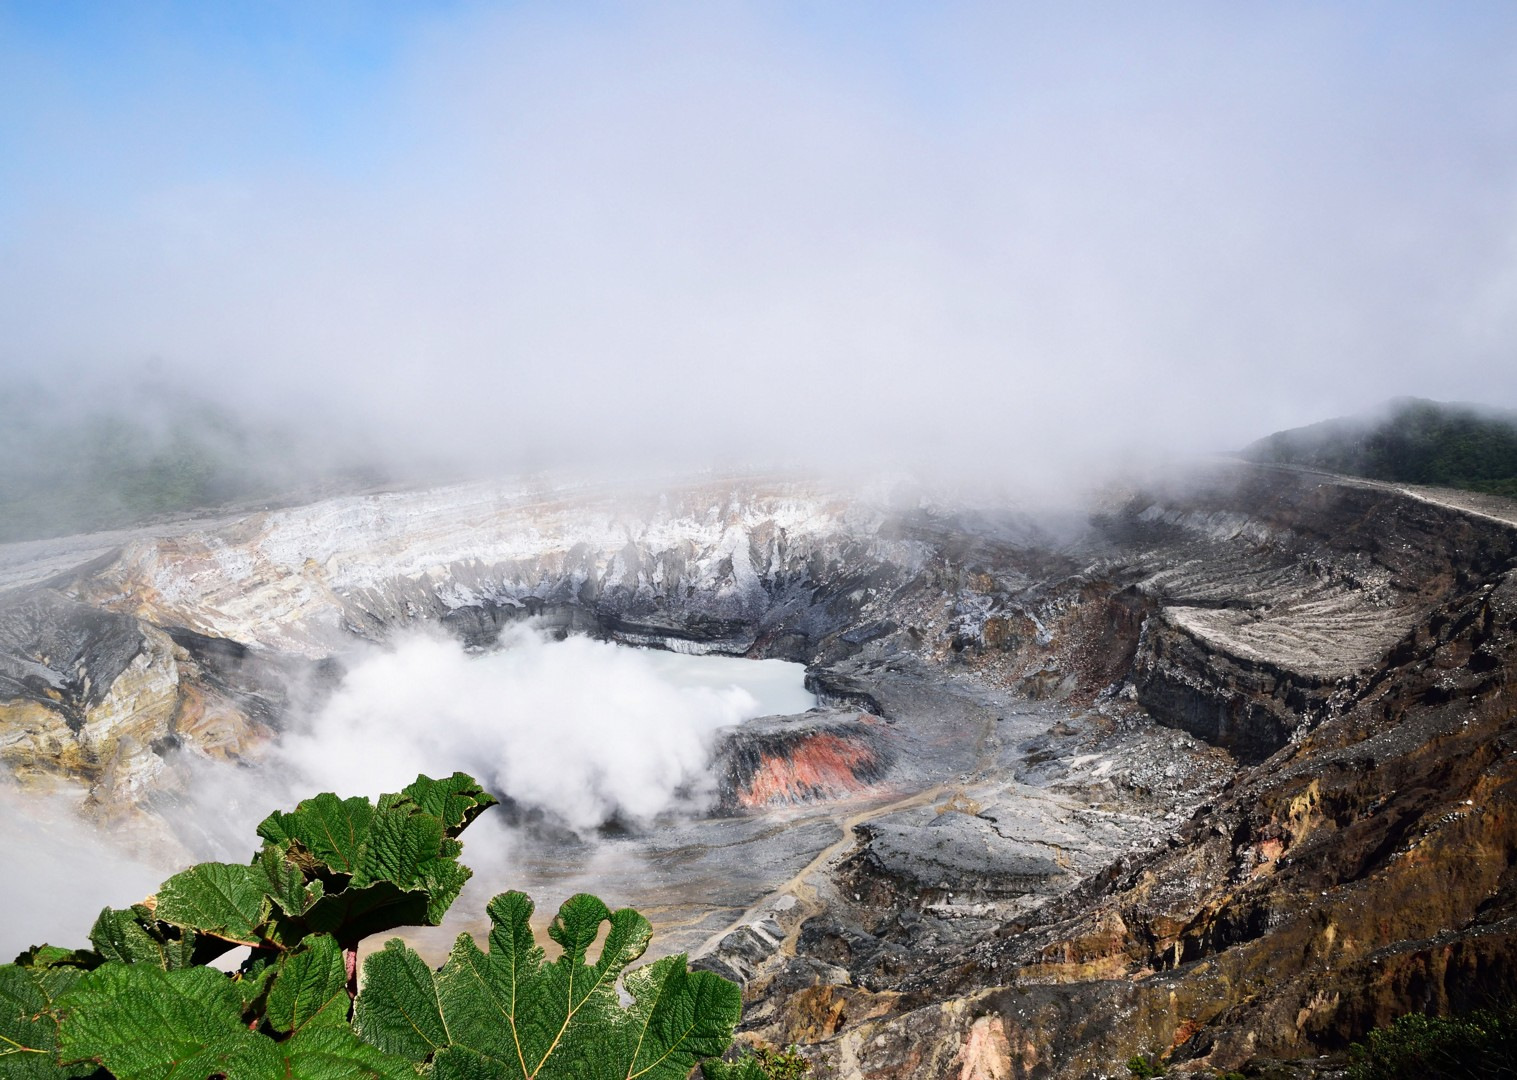 volcano-valleys-guided-family-cycling-holiday.jpg - Costa Rica - Volcanoes and Valleys - Family Cycling